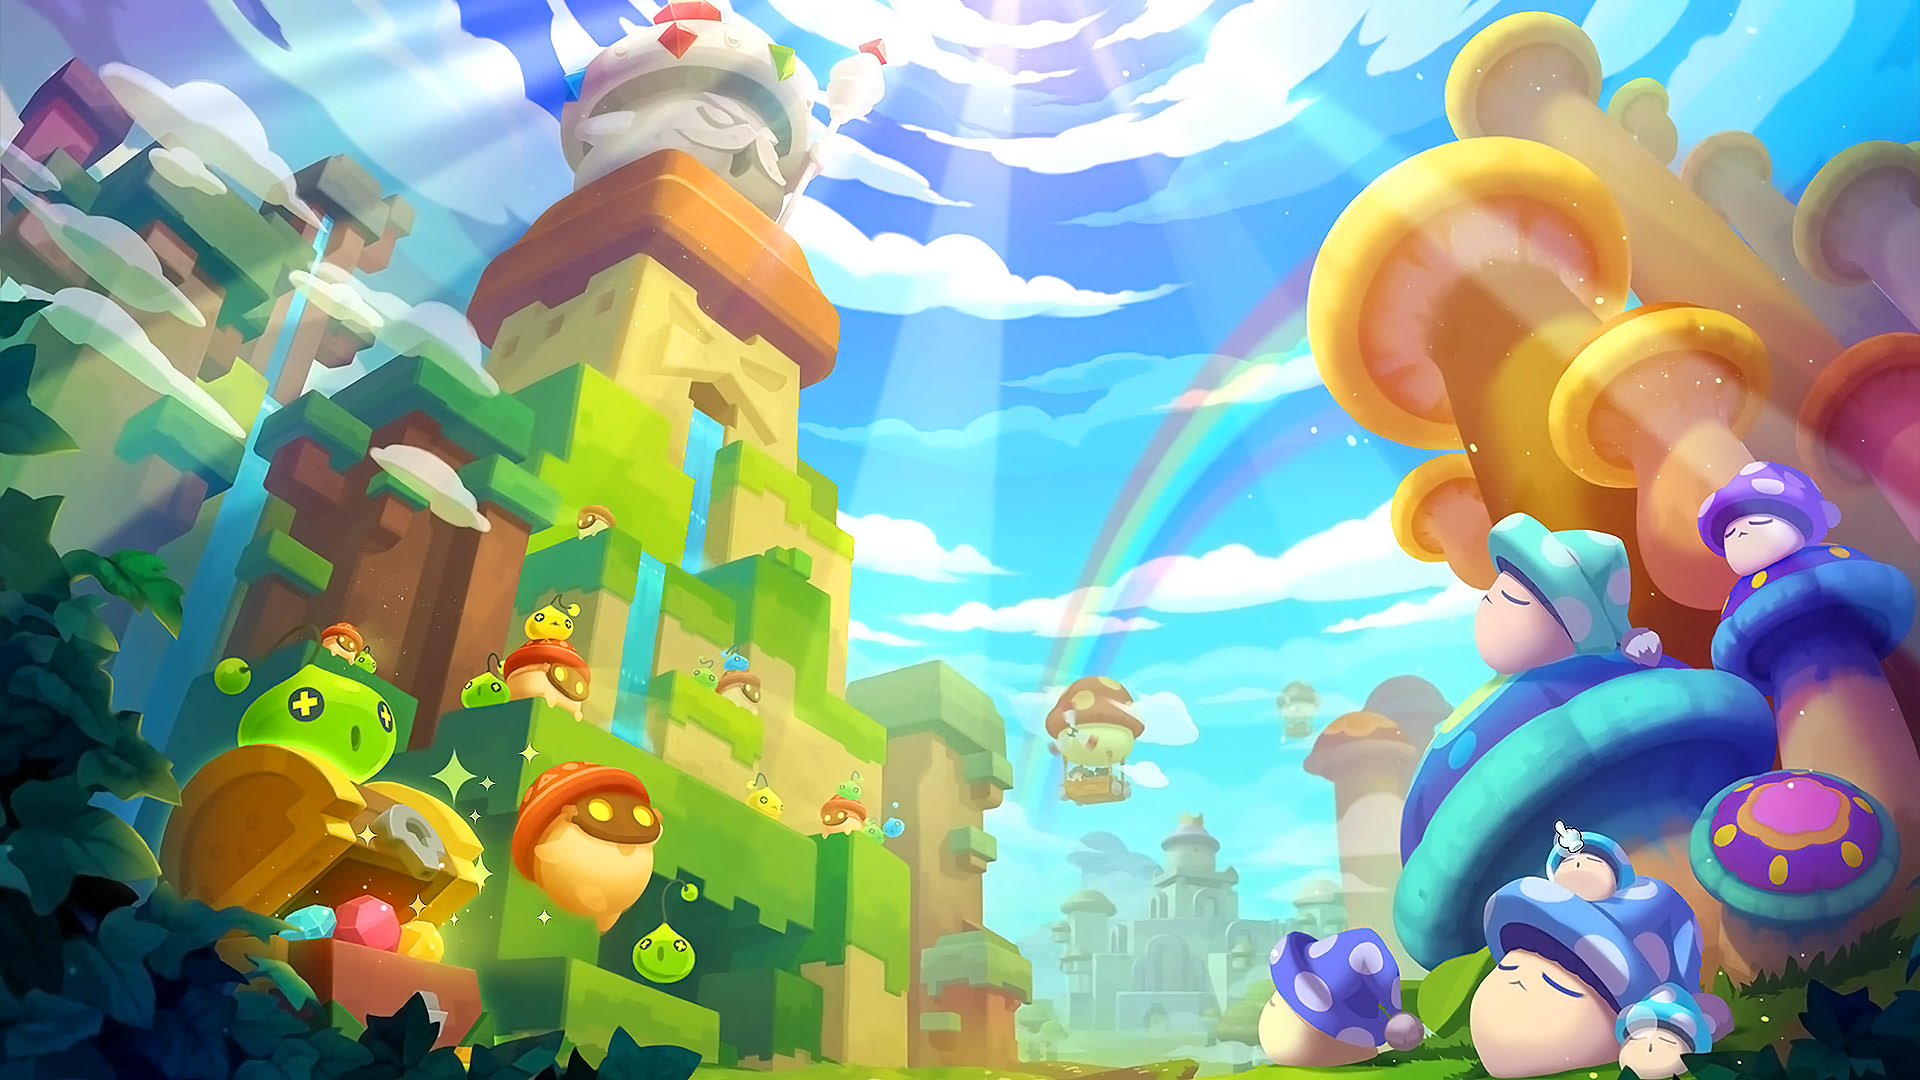 Maplestory 2 4k Wallpapers Top Free Maplestory 2 4k Backgrounds Wallpaperaccess